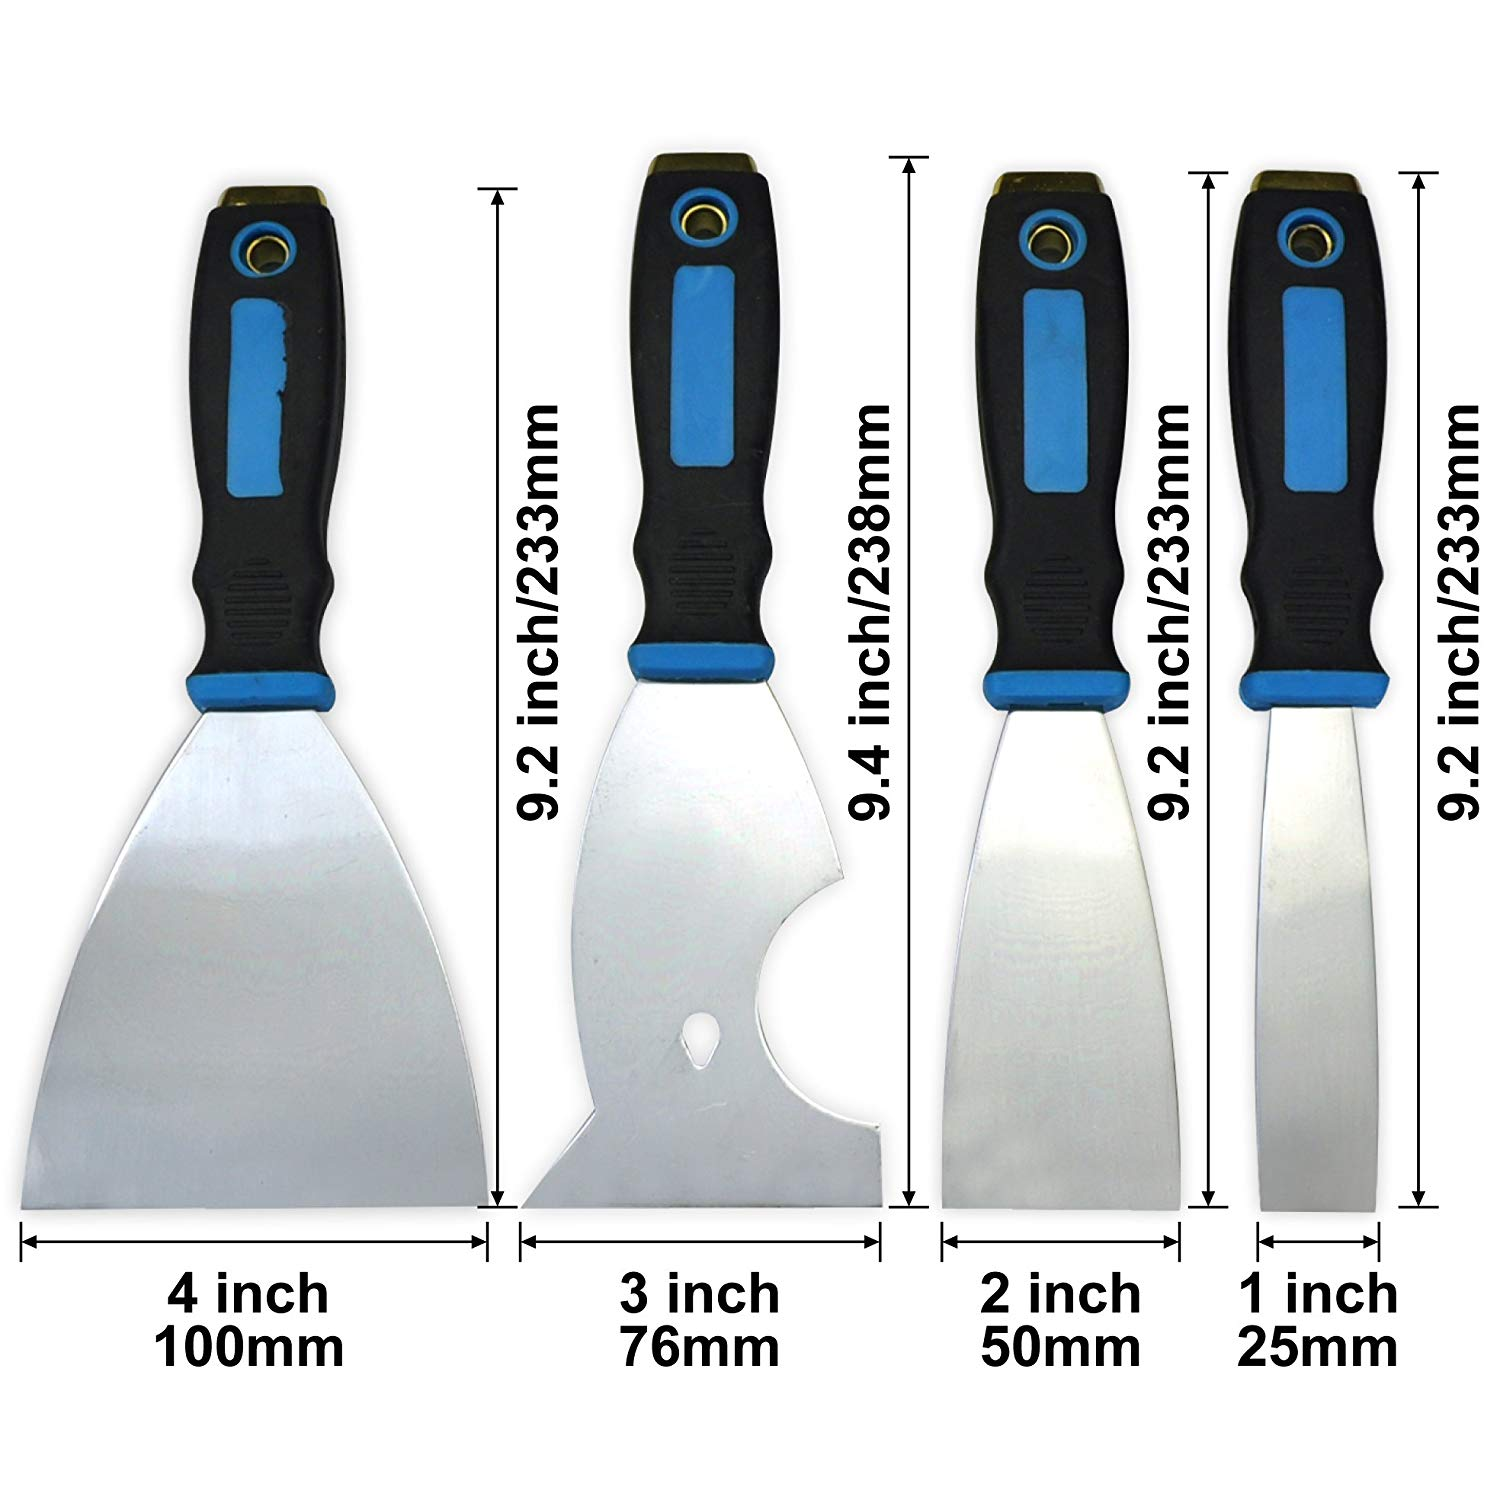 4 Piece(1inch,2inch,6in1,4inch) Paint scraper,putty knife,taping knife,paint roller cleaner,paint scraper set,Painters scraper,paint scraper,putty knife,tools,tool set,home repair tools,paint tools